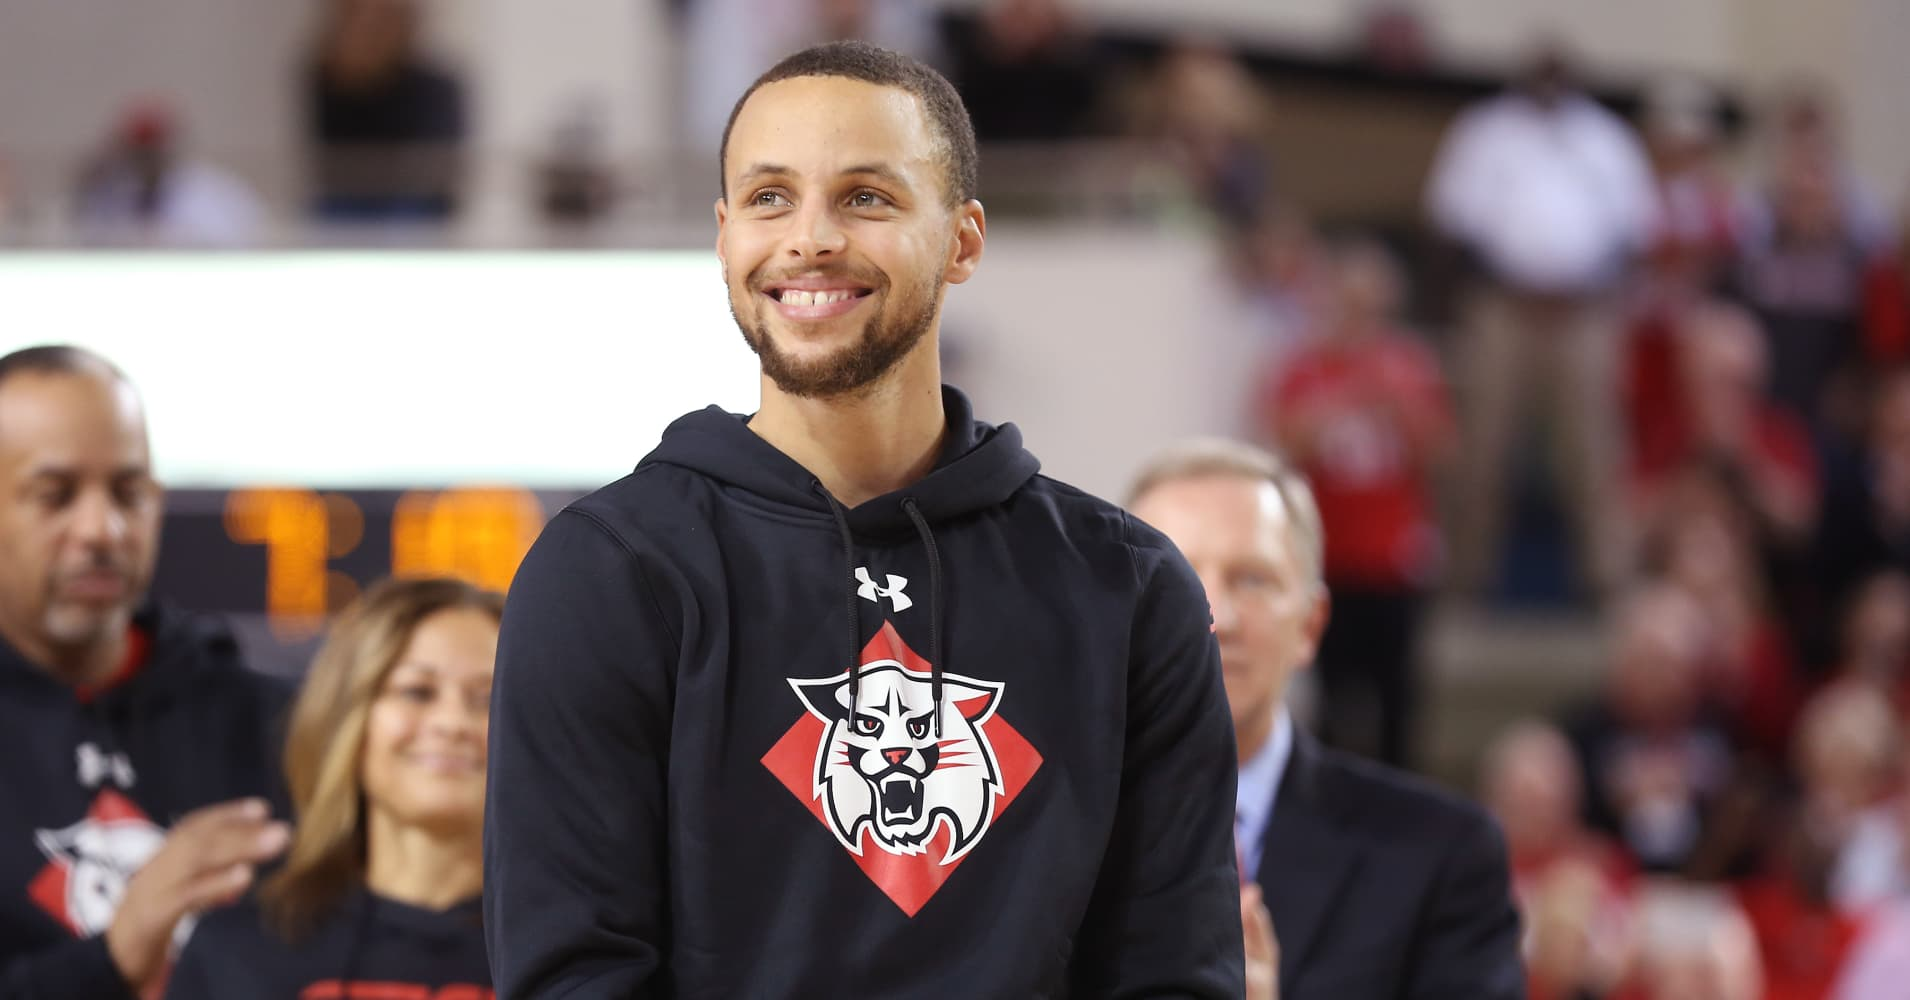 Stephen Curry says the best advice he ever got came from his mom when he was 13 years old